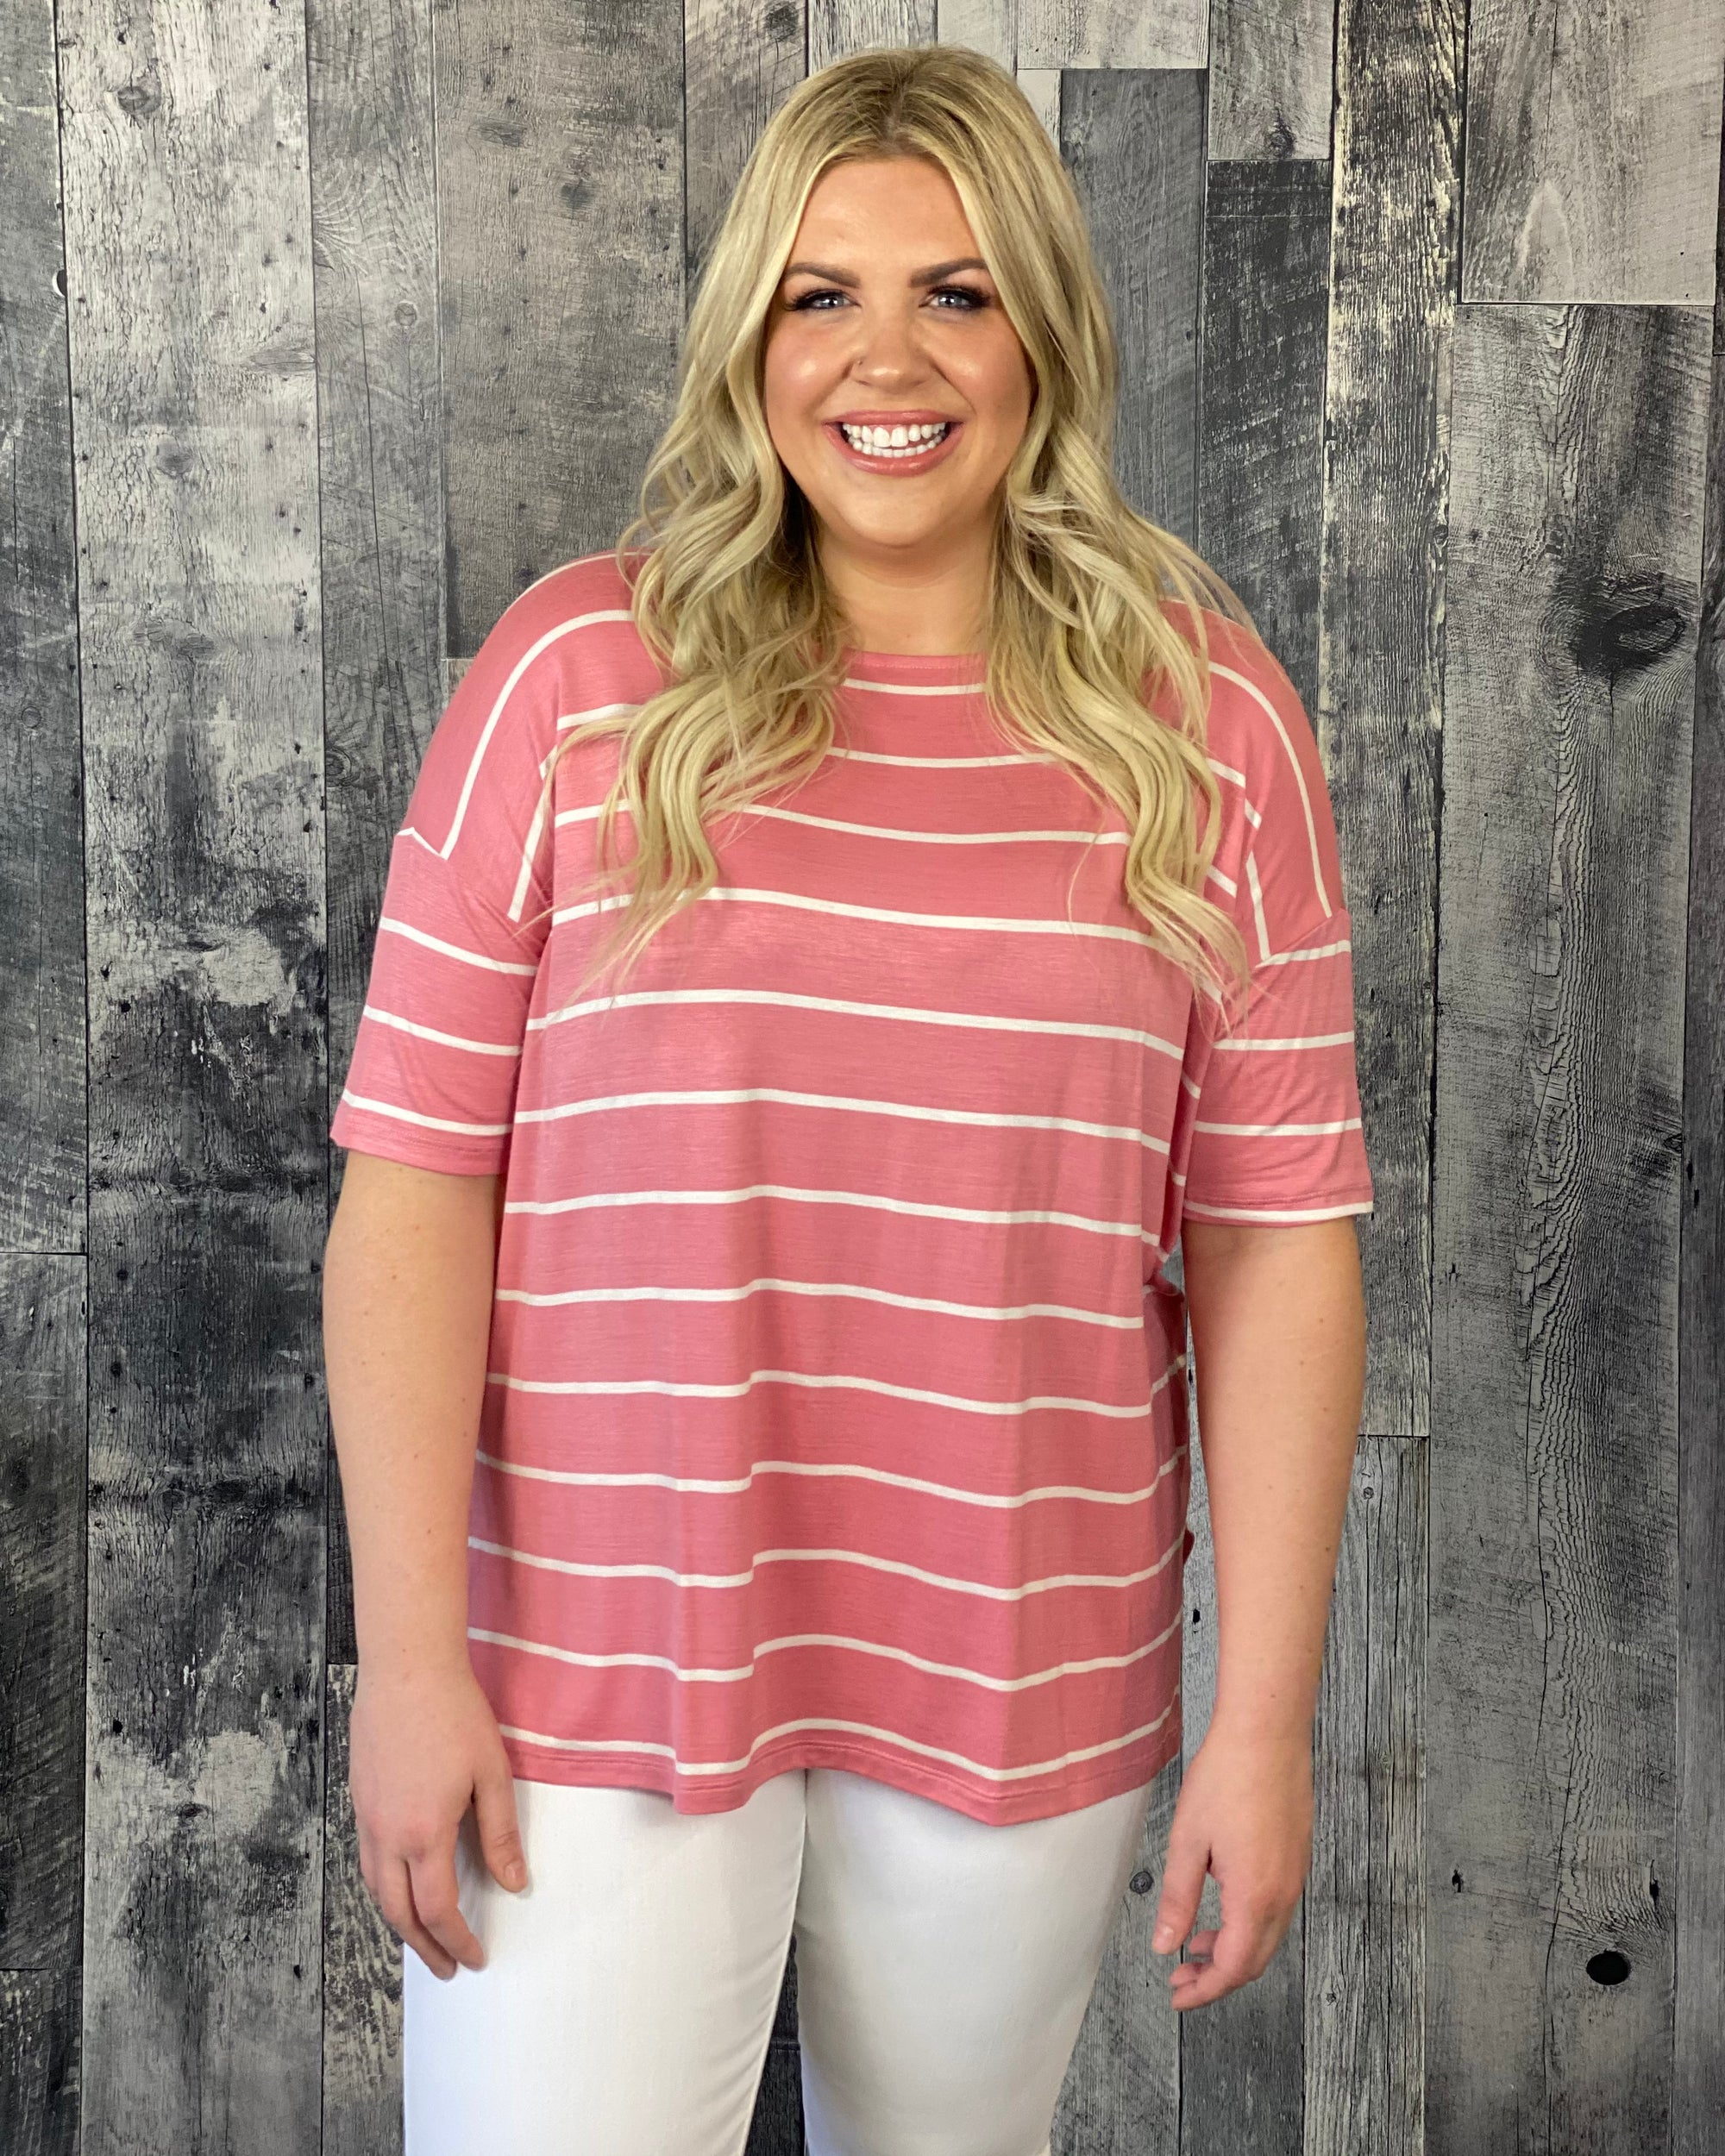 Jersey Shift Style Striped Top - Blush